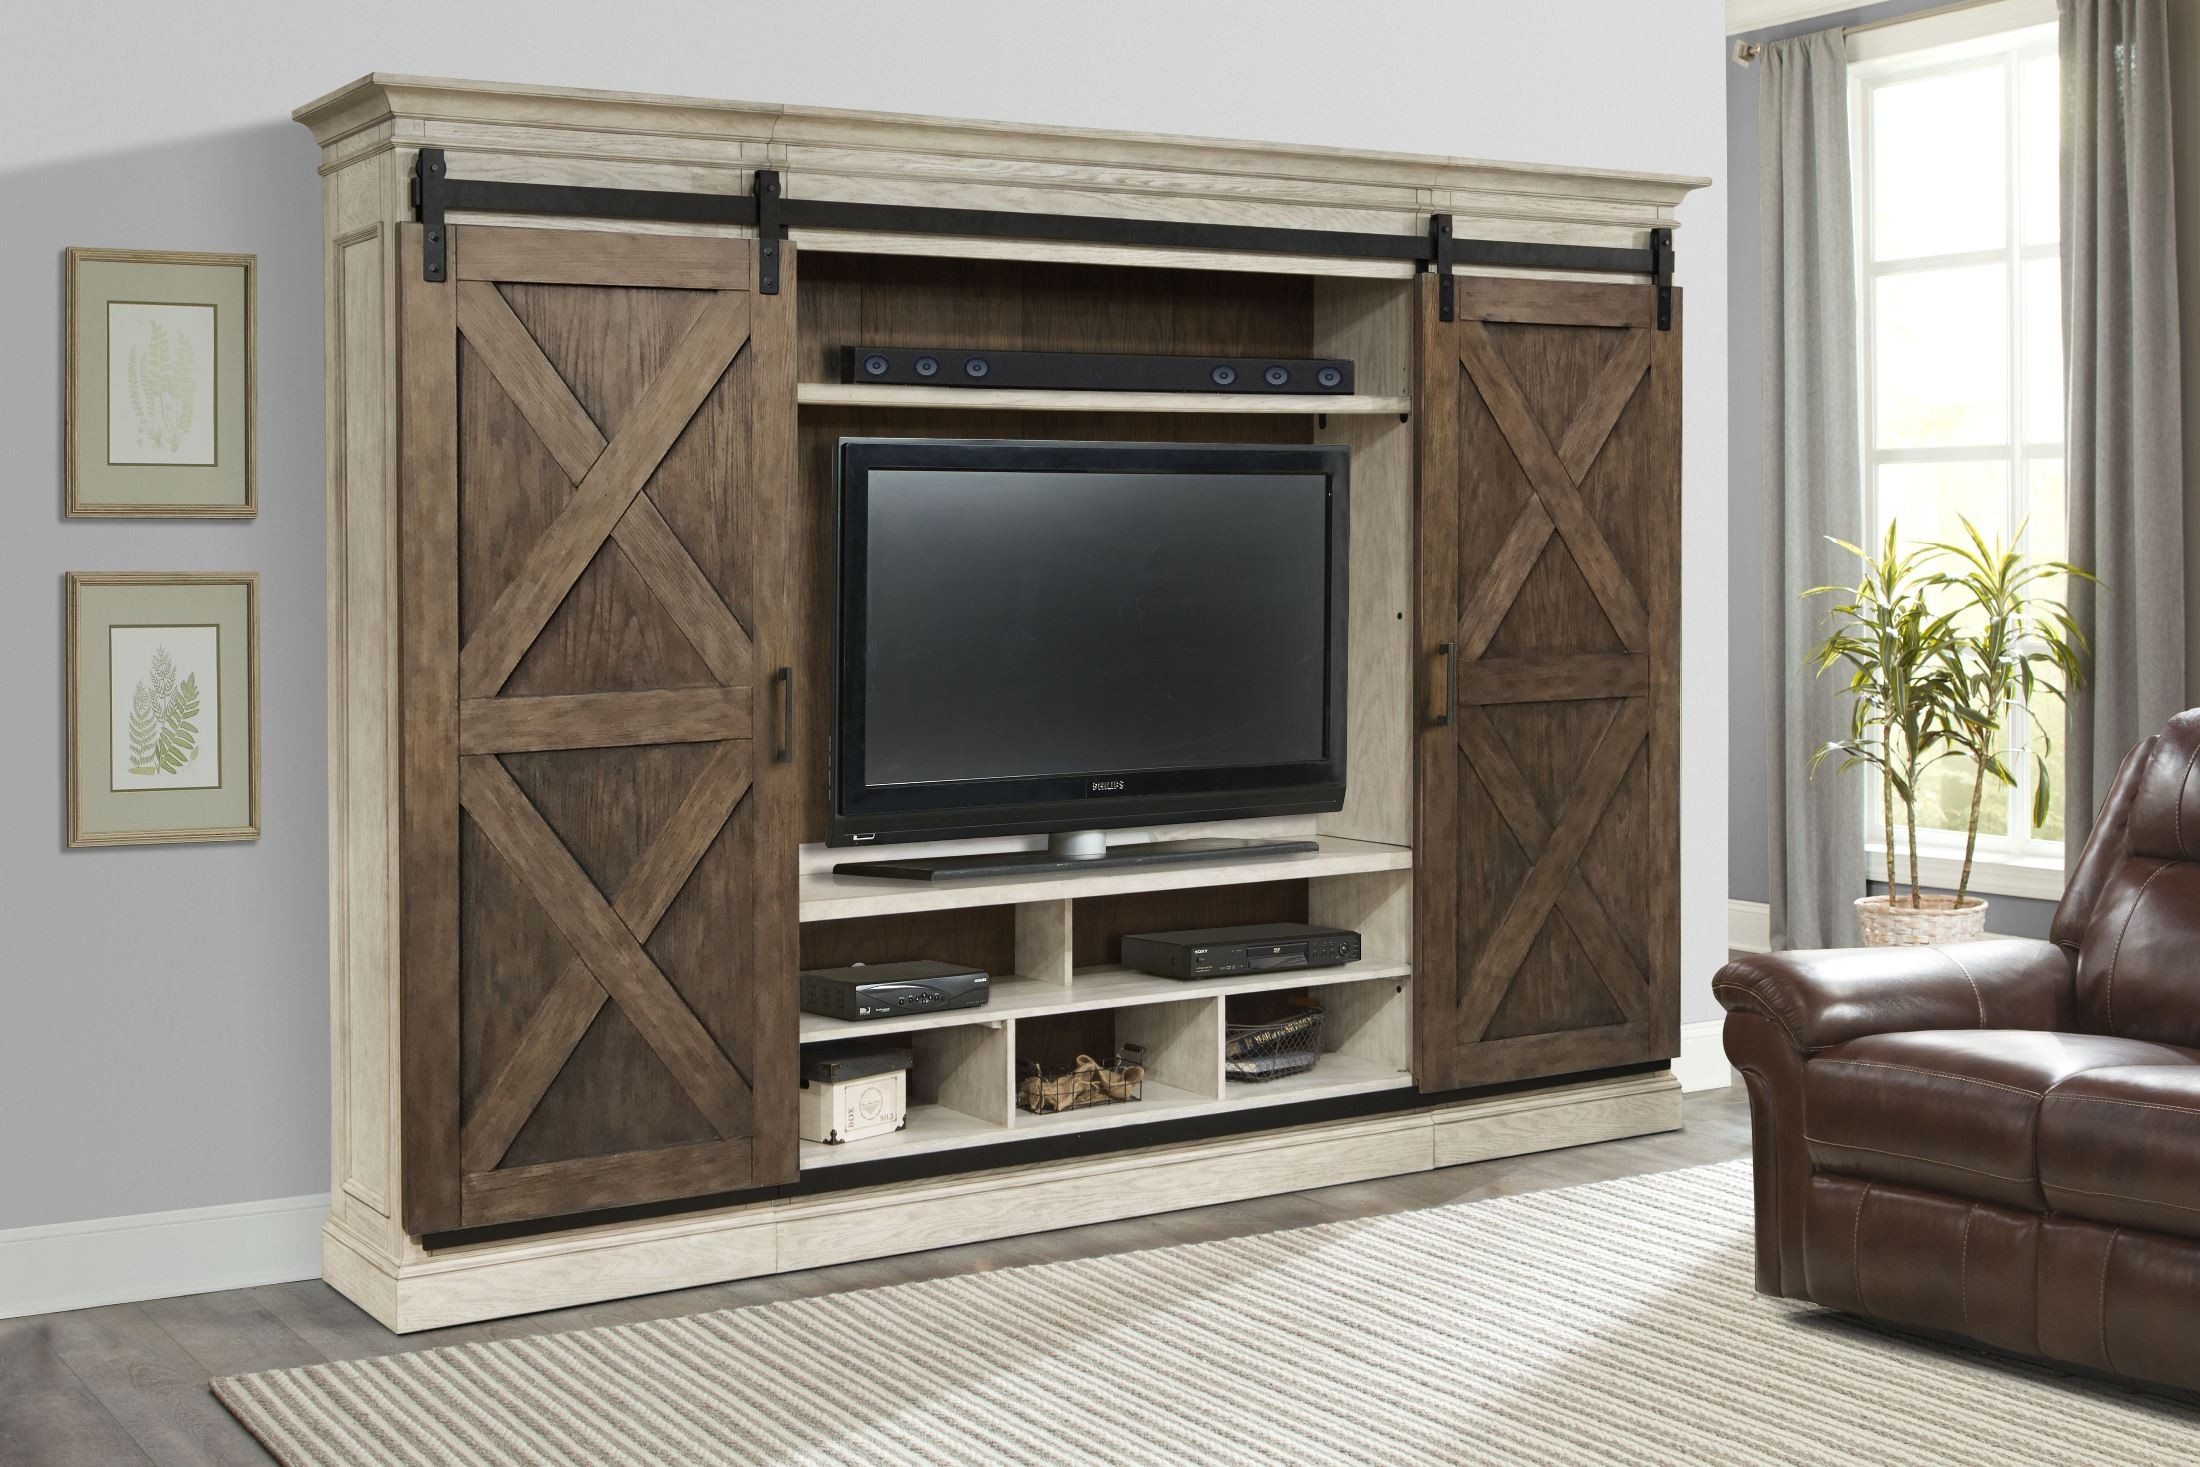 barn door entertainment center Savannah 5 Piece Sliding X Barn Door Entertainment Wall Unit from  barn door entertainment center